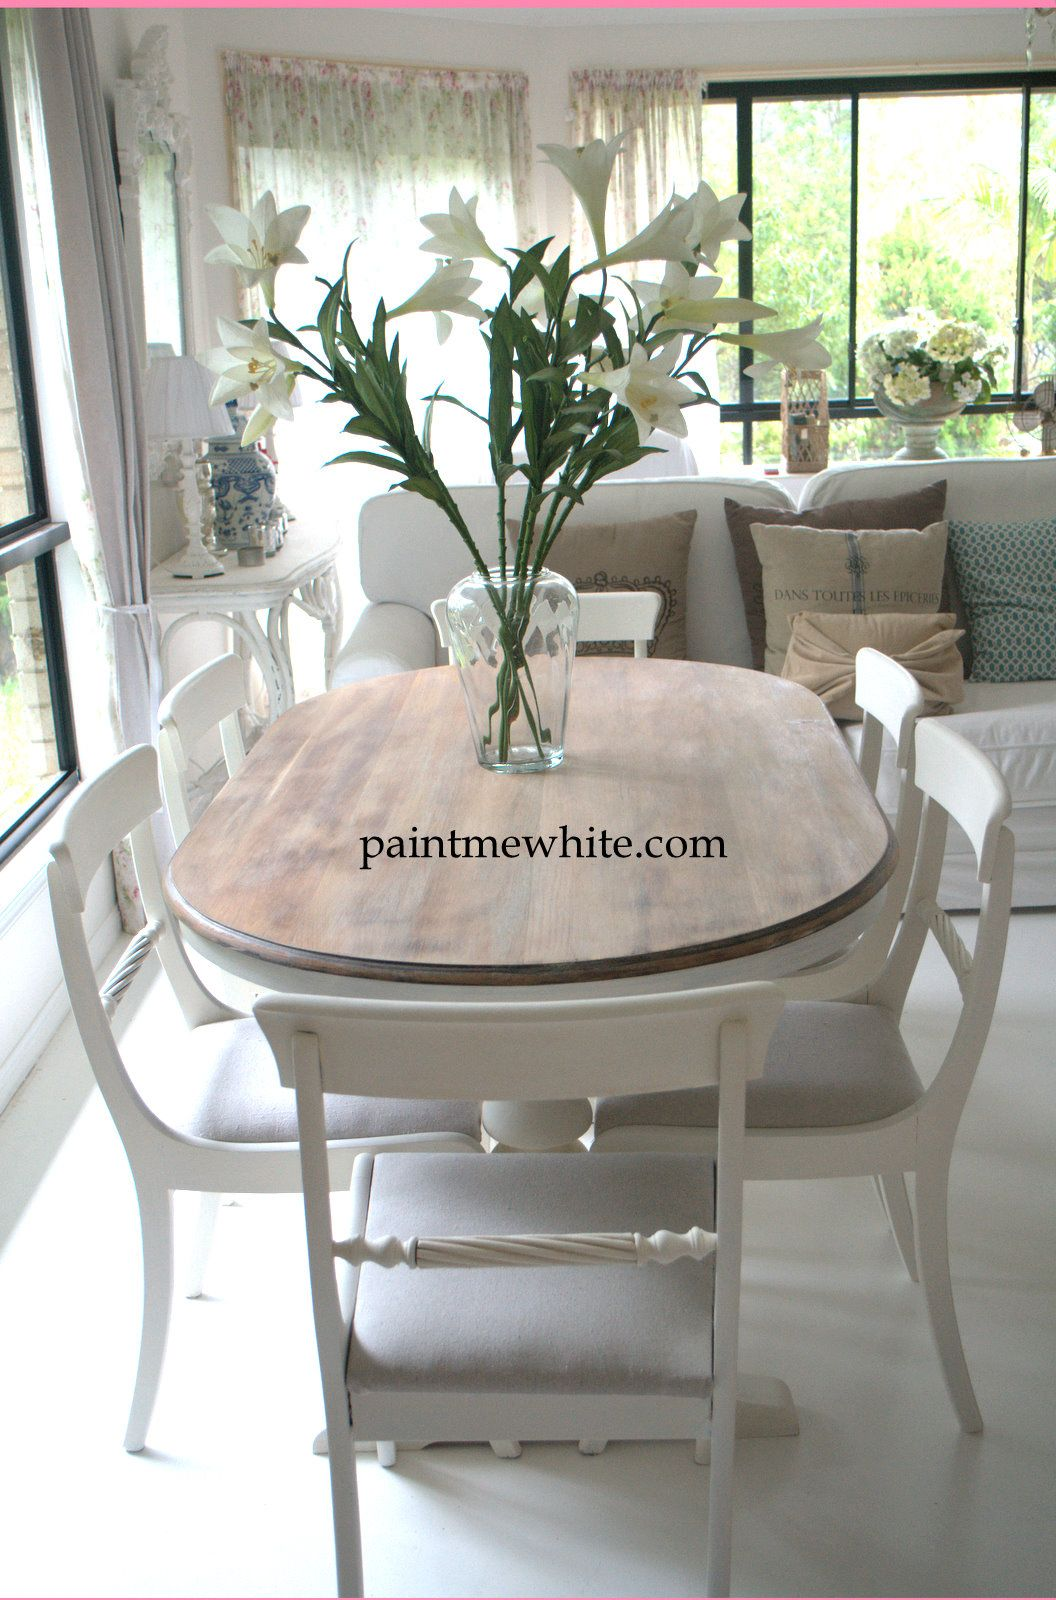 Gentil Dining Table Makeover   Whitewash Table Top And White Chalk Paint The Base  And Chairs